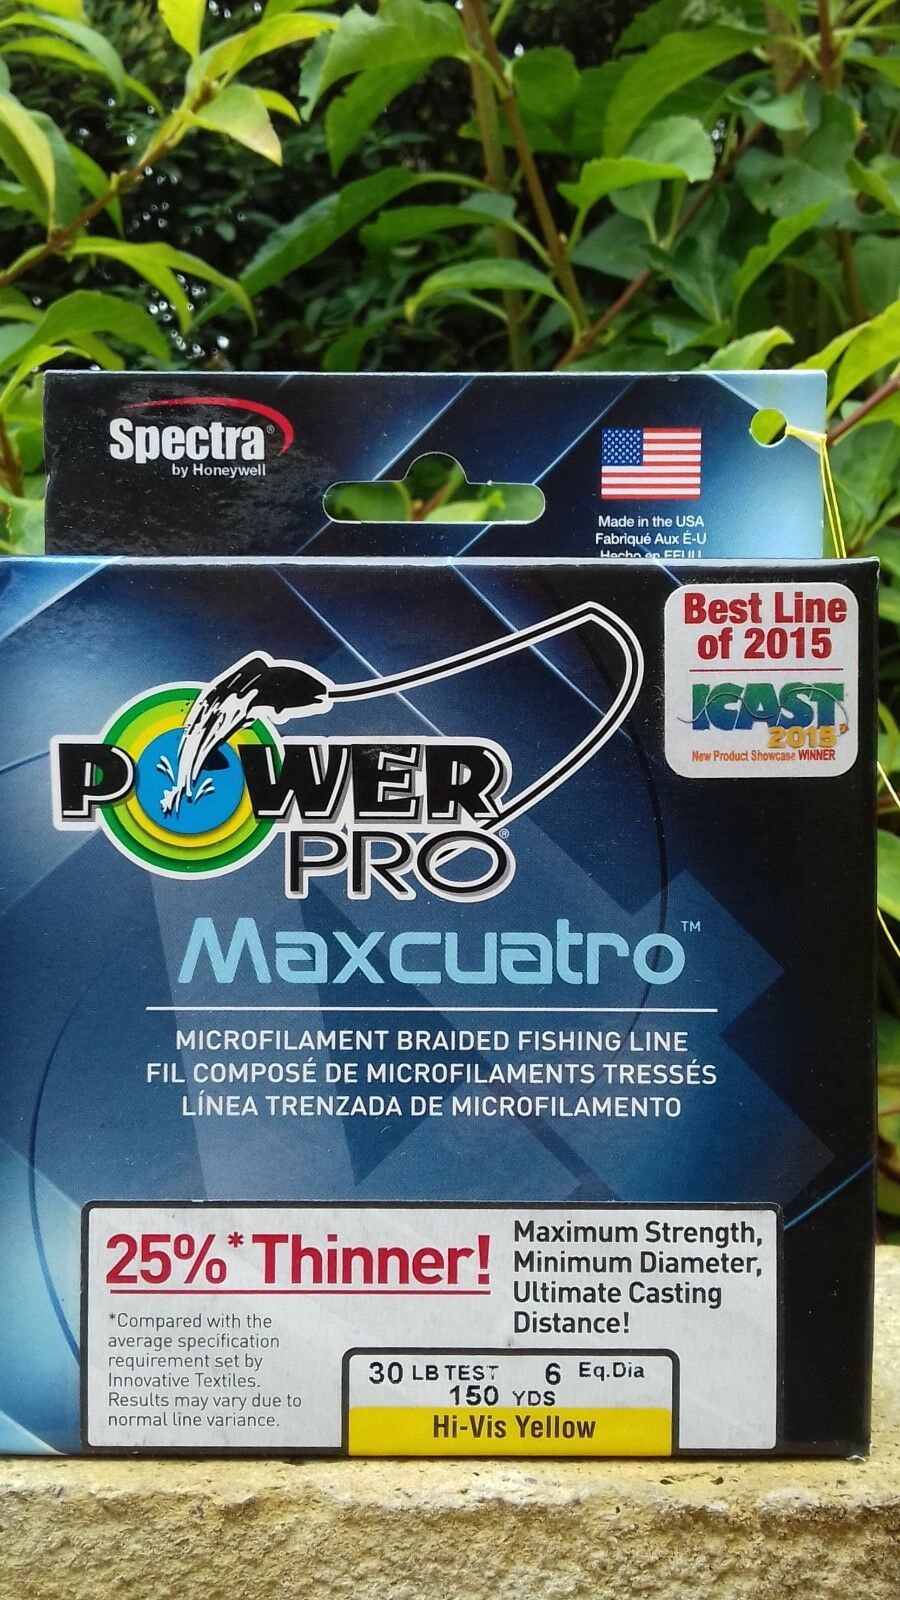 POWERPRO MAXCUATRO BRAID HI-VIZ YELLOW 30Ib 150 yds PIKE CATFISH POWER PRO